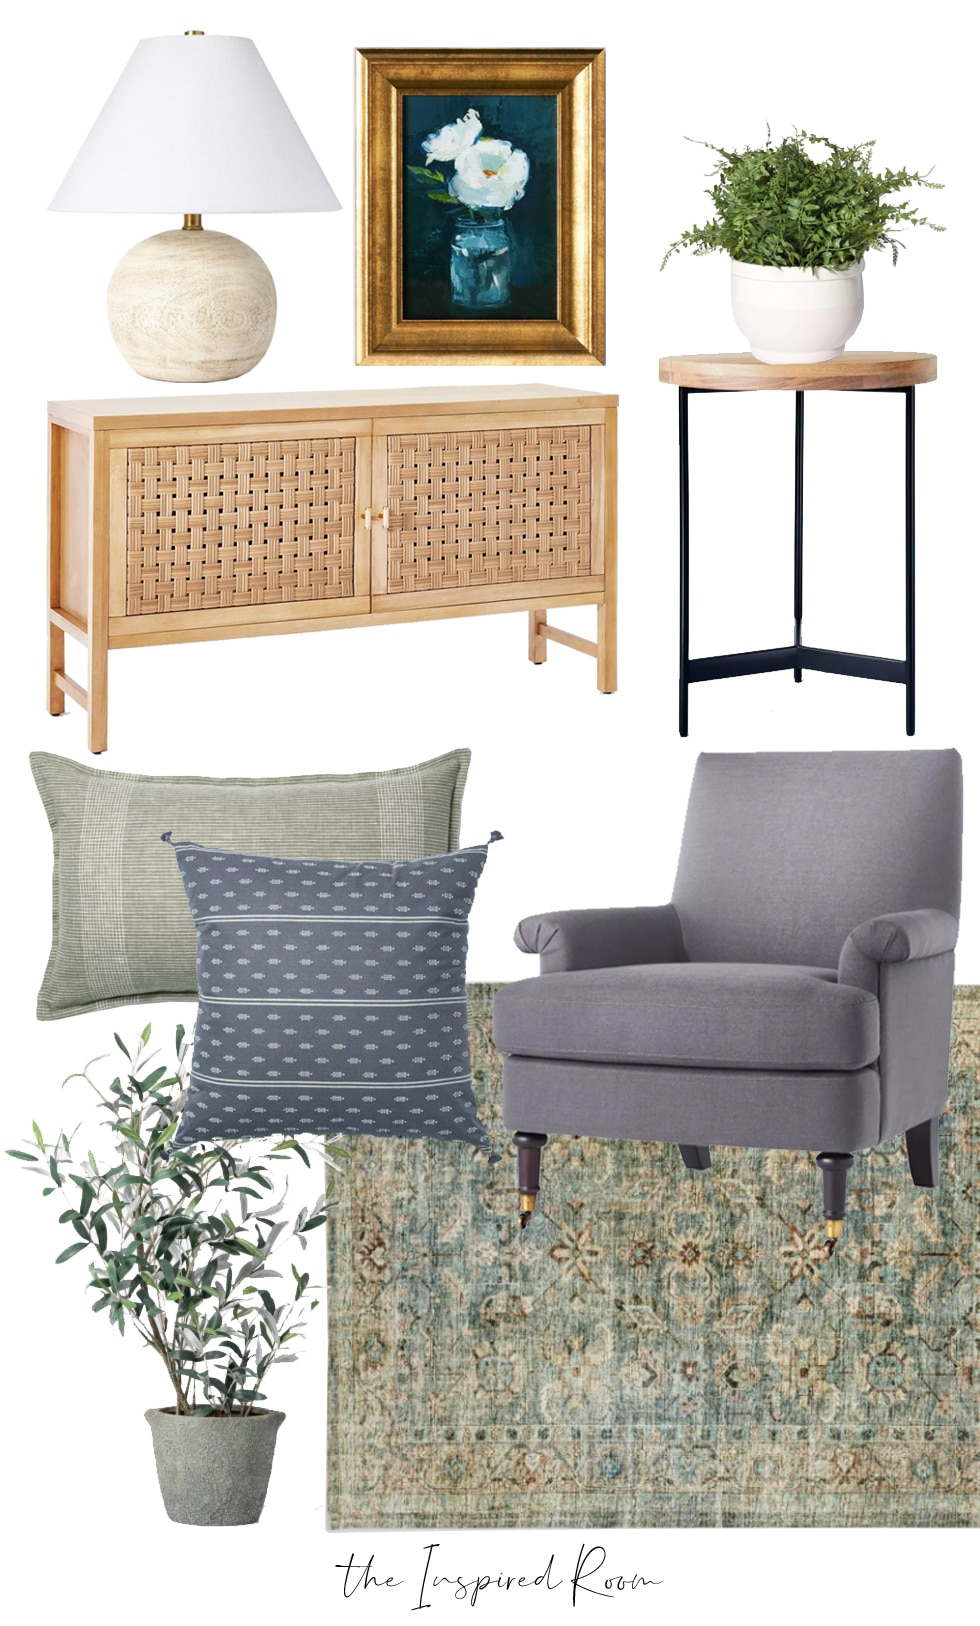 Obsessed: Studio McGee Target Home Decor Spring 2021 + Mood Boards